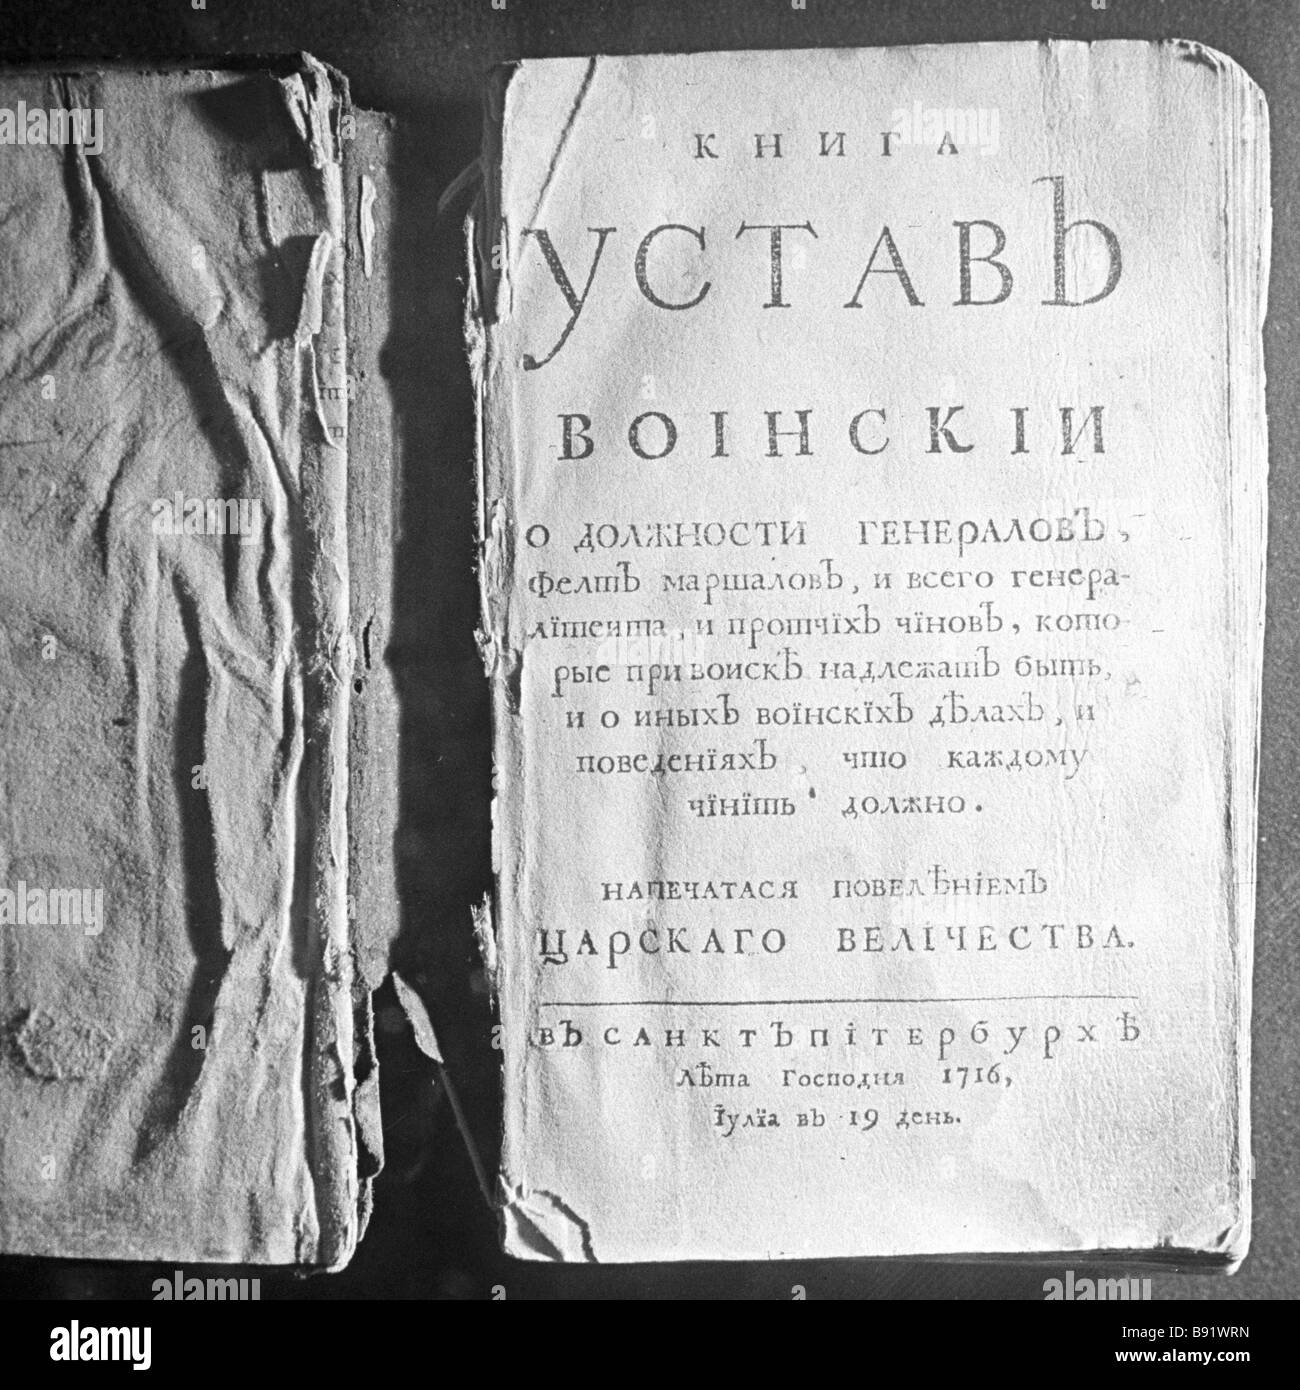 The Book of Military Regulations title page State History Museum Moscow - Stock Image